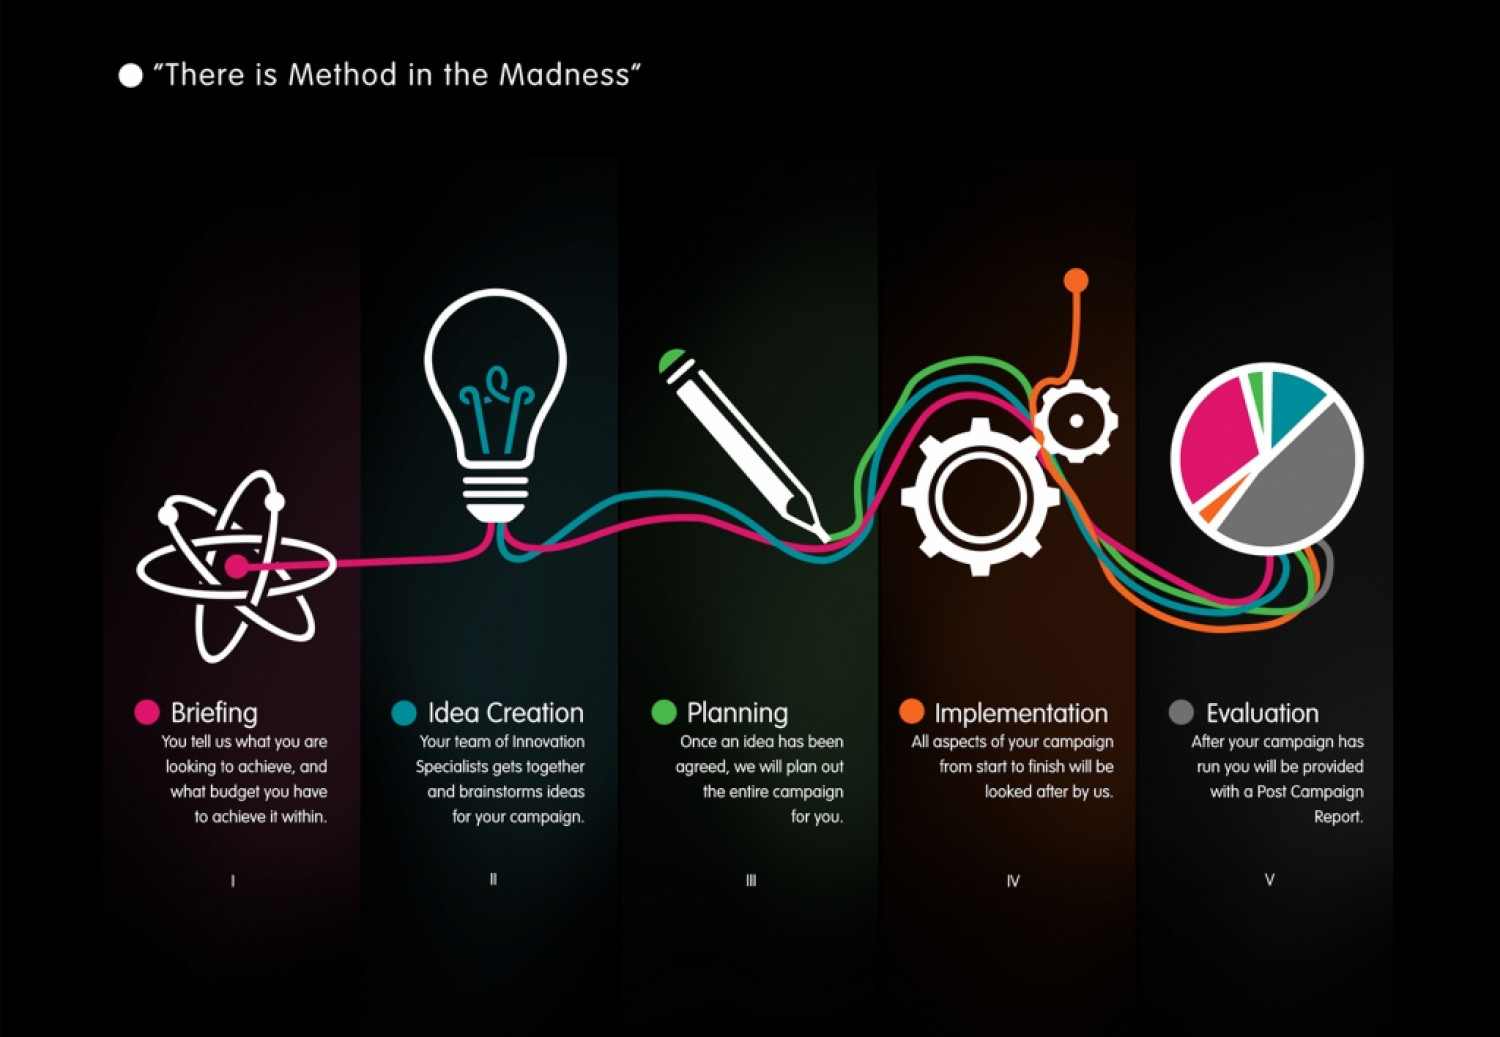 Method in the Madness Infographic